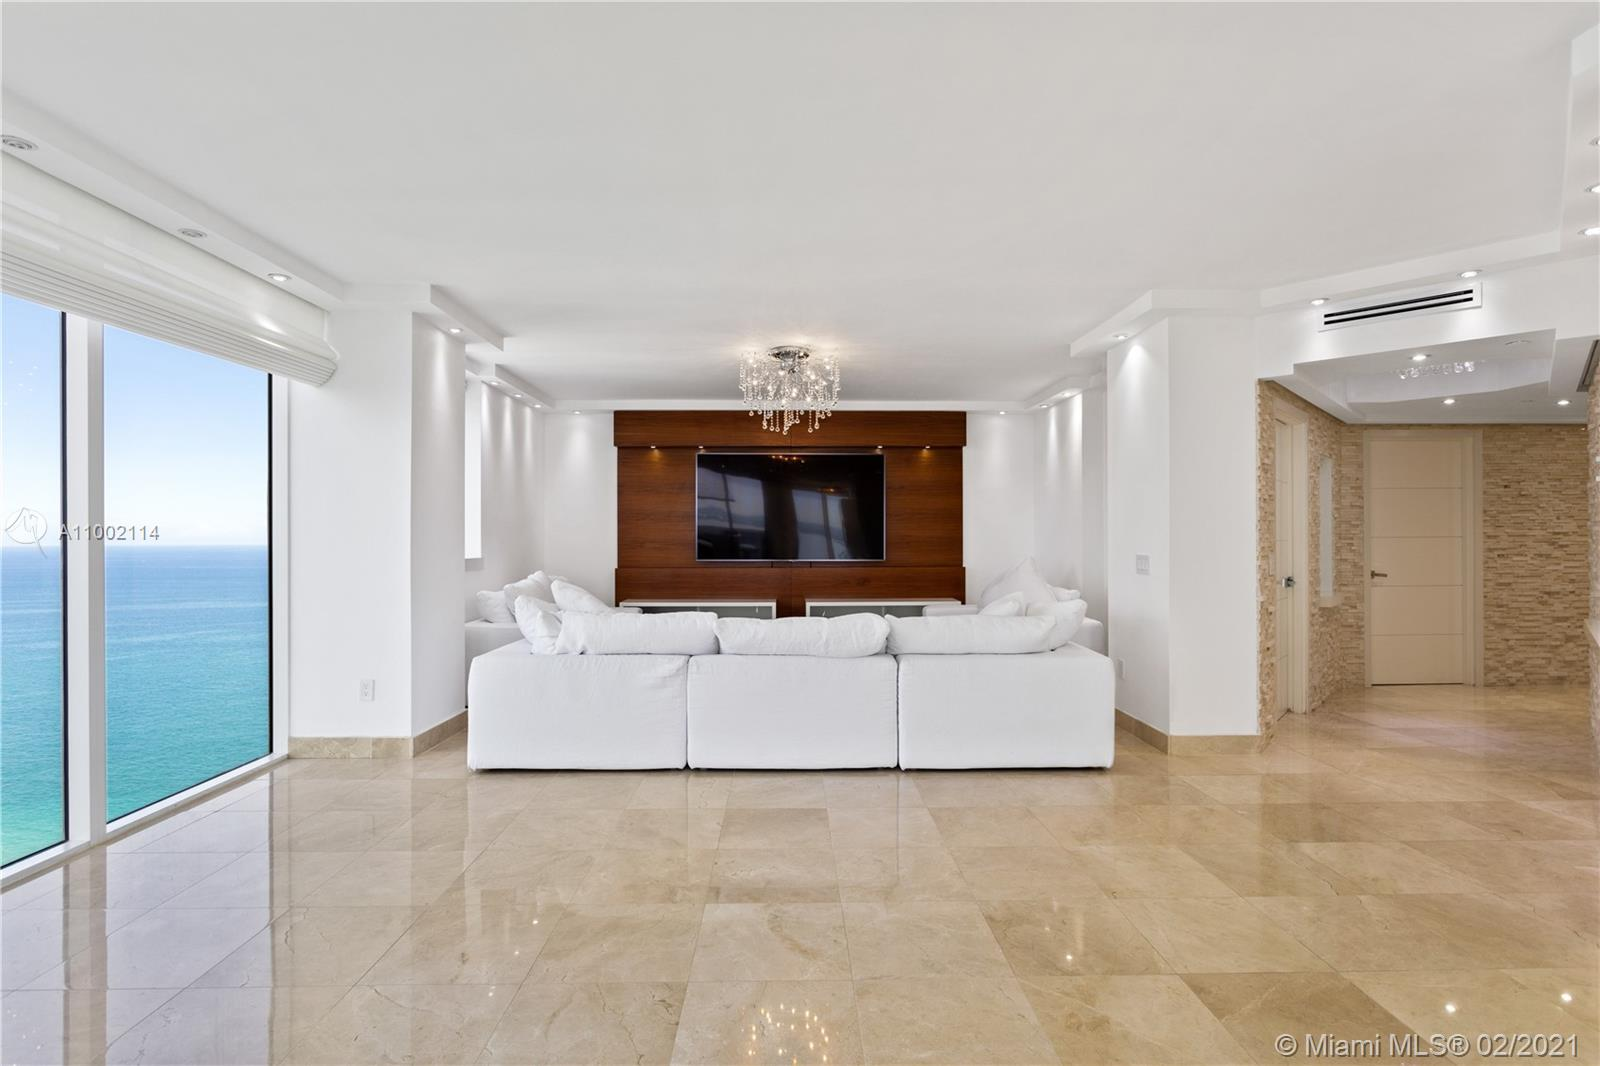 As you enter into this completely renovated residence, you will be greeted with spectacular views of the Miami skyline, bay & ocean. Sitting high up in the sky on the 37th flr, this unit boast an expansive flr plan which compliments those magnificent views. Originally a 2-bed & 2-bath, the second bedroom wall was open up to create a large living-dining room area. This can easily be reverted if the second bedroom is needed. The main bedroom includes a custom built walk-in closet. The bath is outfitted w/double sinks and a glass large shower. Fabulous open kitchen, marble floors, floor-to-ceiling windows, spacious wrap-around terrace, electric shades throughout and more exquisite details are found throughout this residence.